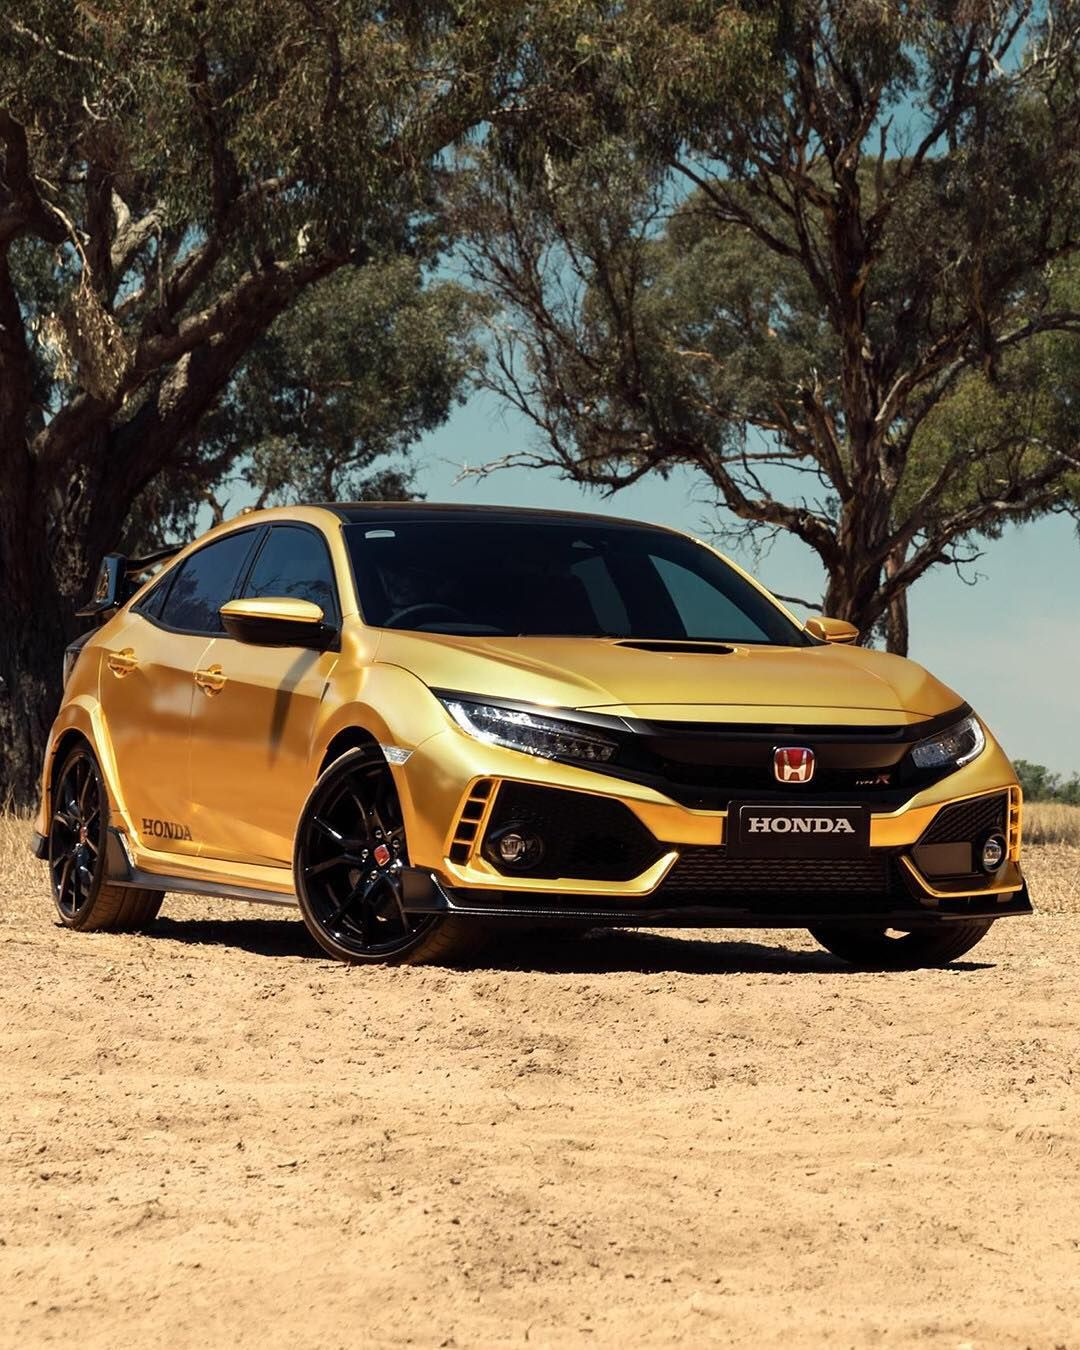 Car And Driver On Instagram Honda Covers The Civic Type R And Nsx In Gold For Its 50th Anniversar Honda Civic Hatchback Honda Civic Vtec Honda Civic Type R